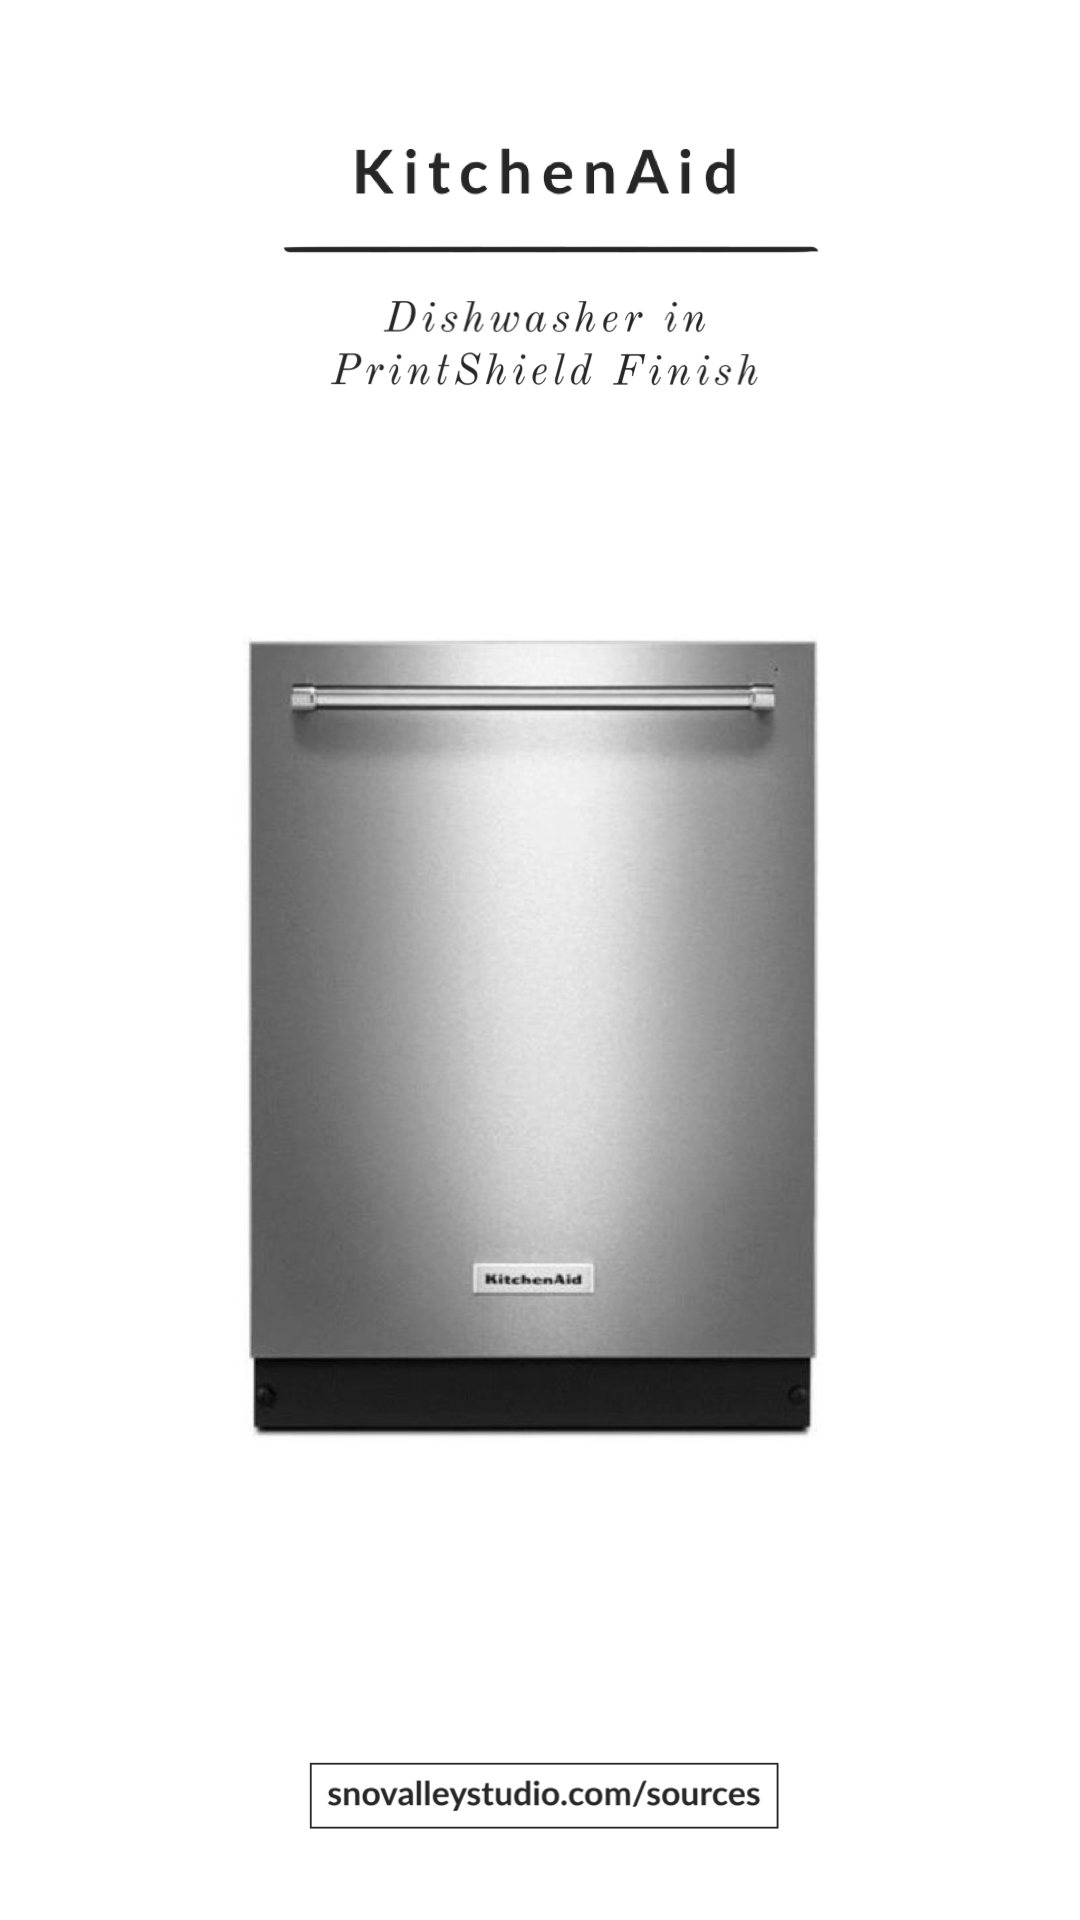 Dishwasher: KitchenAid – 46 DBA Dishwasher with Bottle Wash Option and PrintShield™ Finish